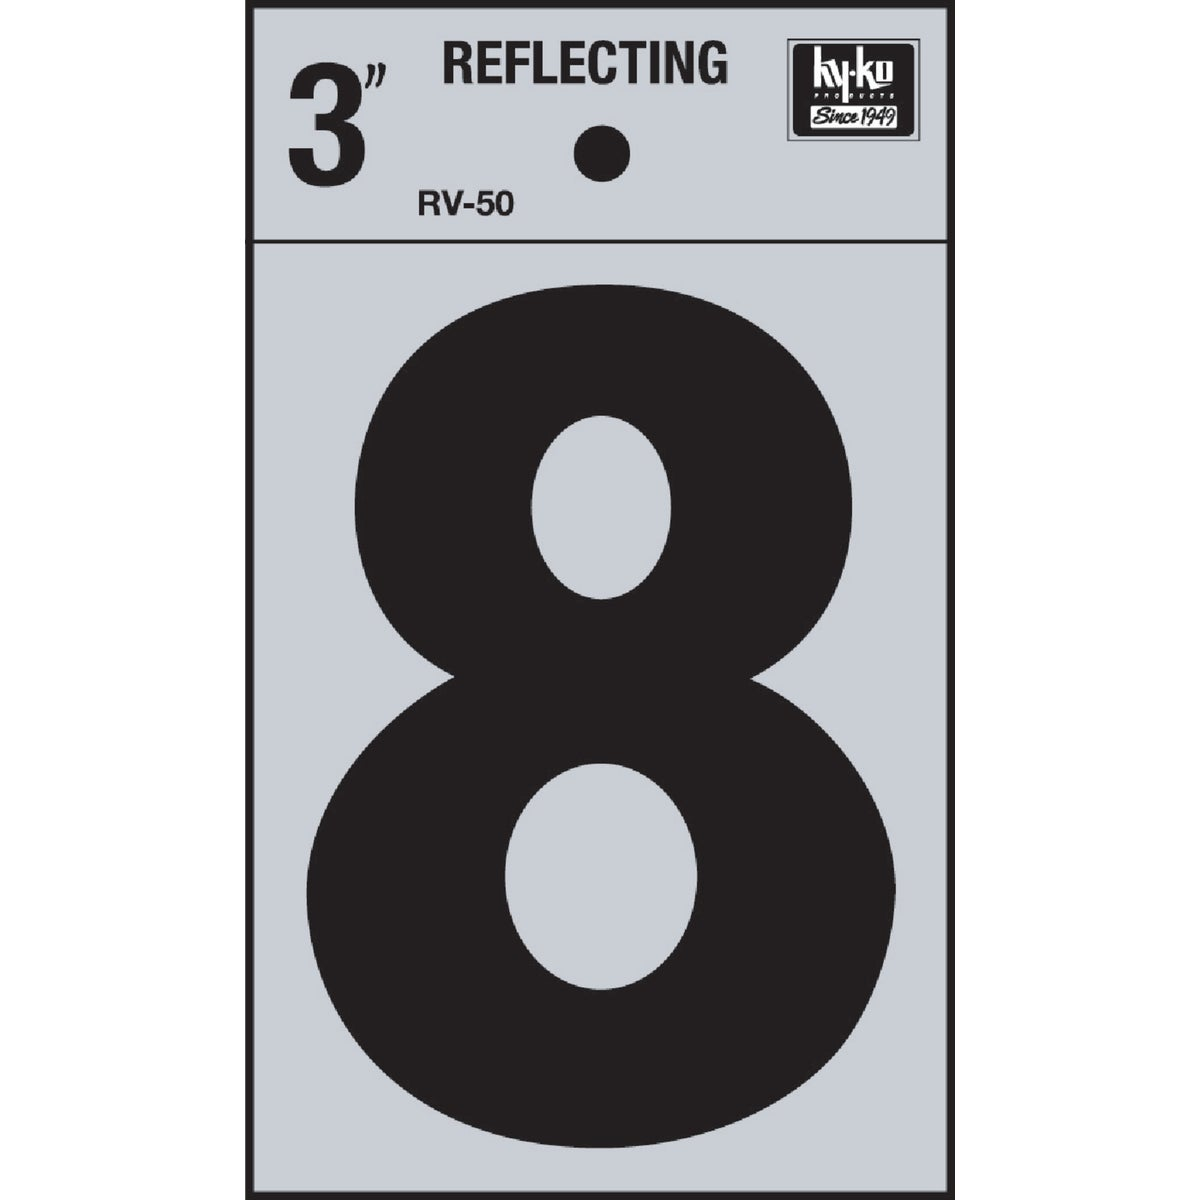 "3"" REFLECT NUMBER 8 - RV-50-8 by Hy Ko Prods Co"